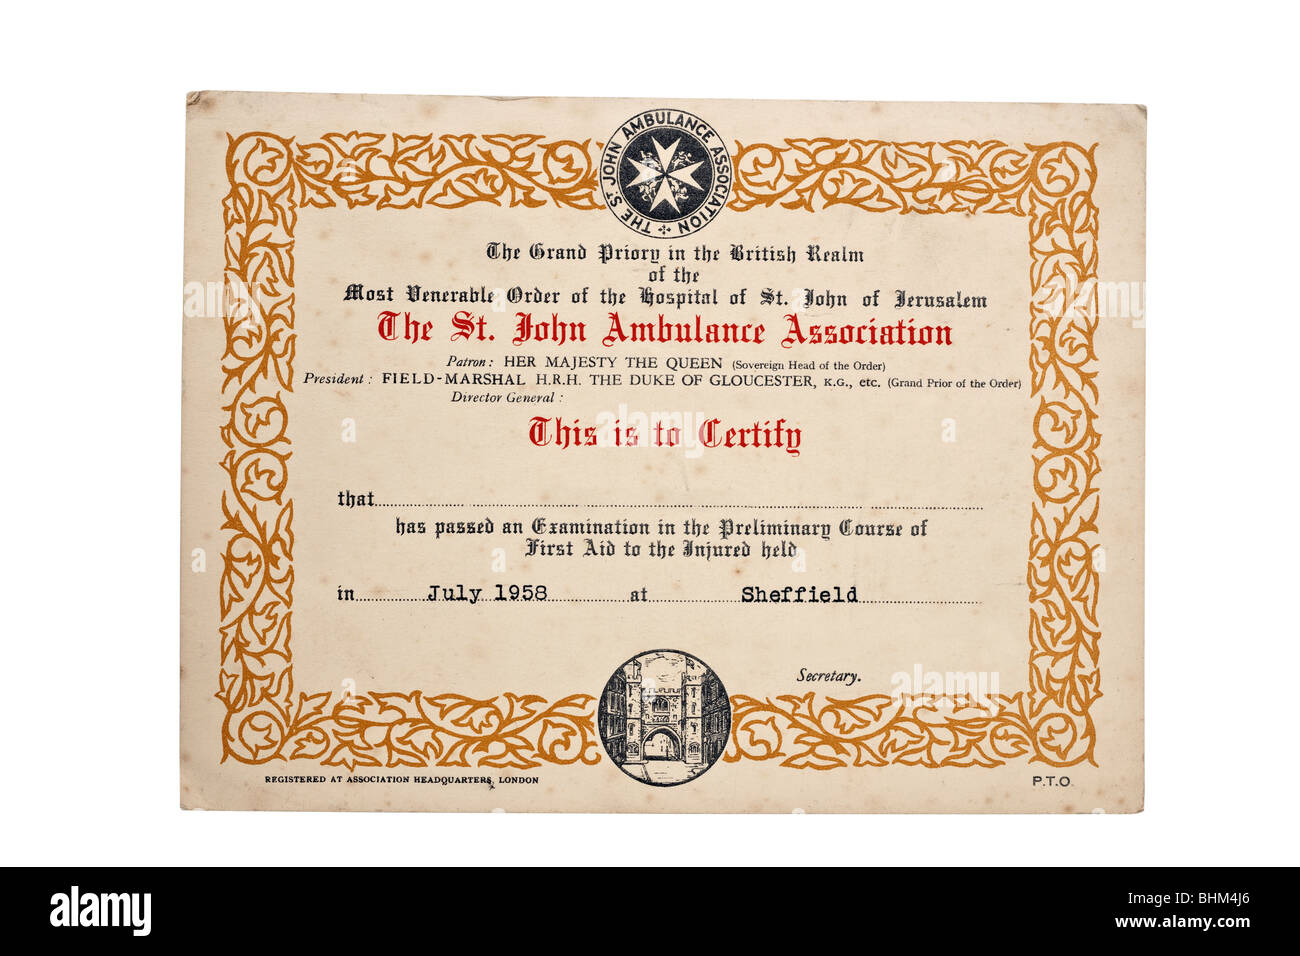 St John Ambulance Association certificat daté de juillet 1958 Photo Stock